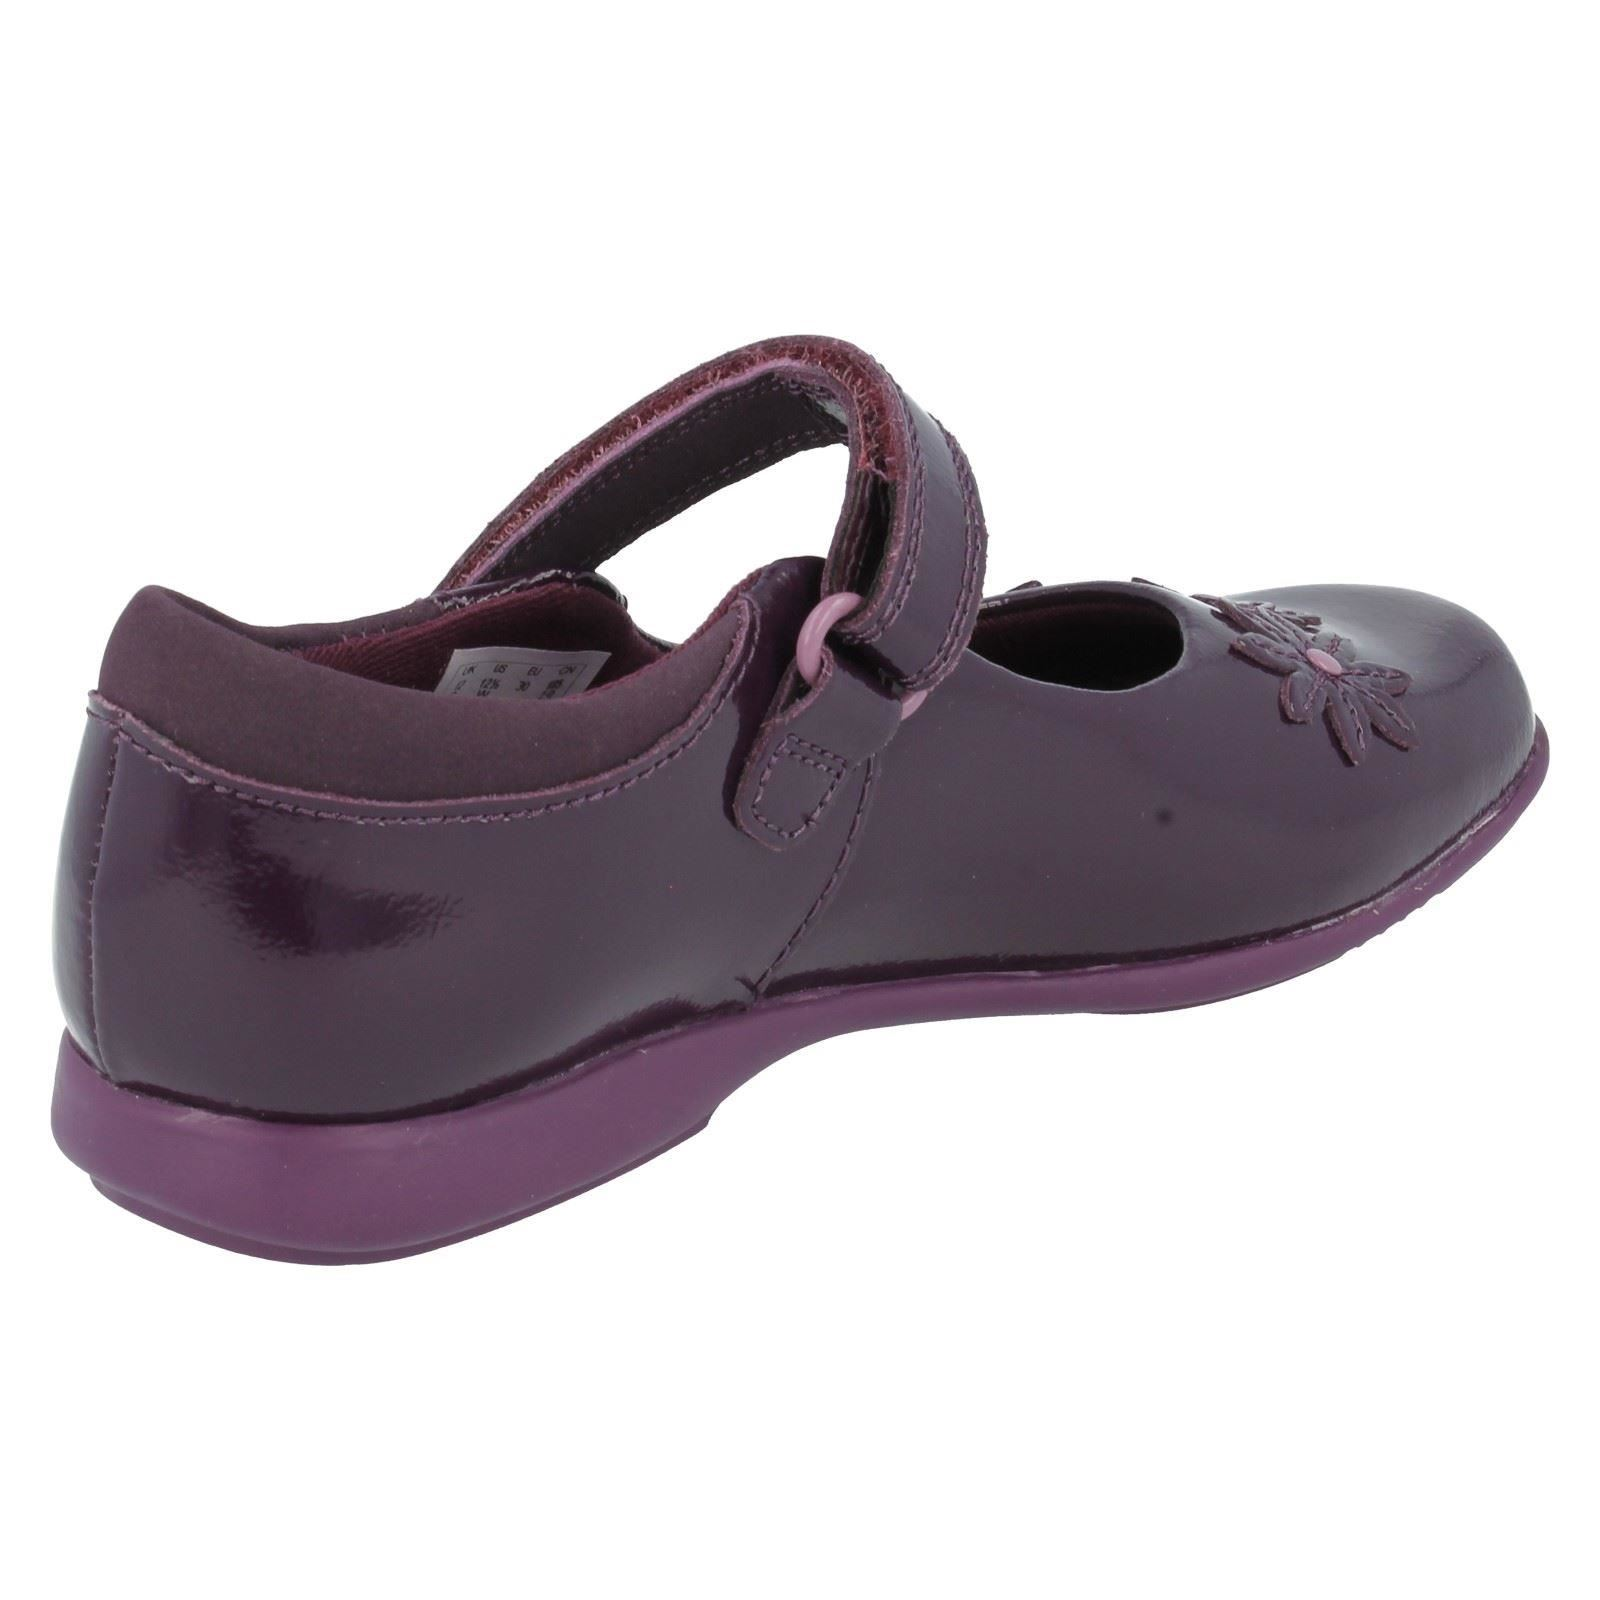 Girls Clarks Shoes Style - Trixi Beth